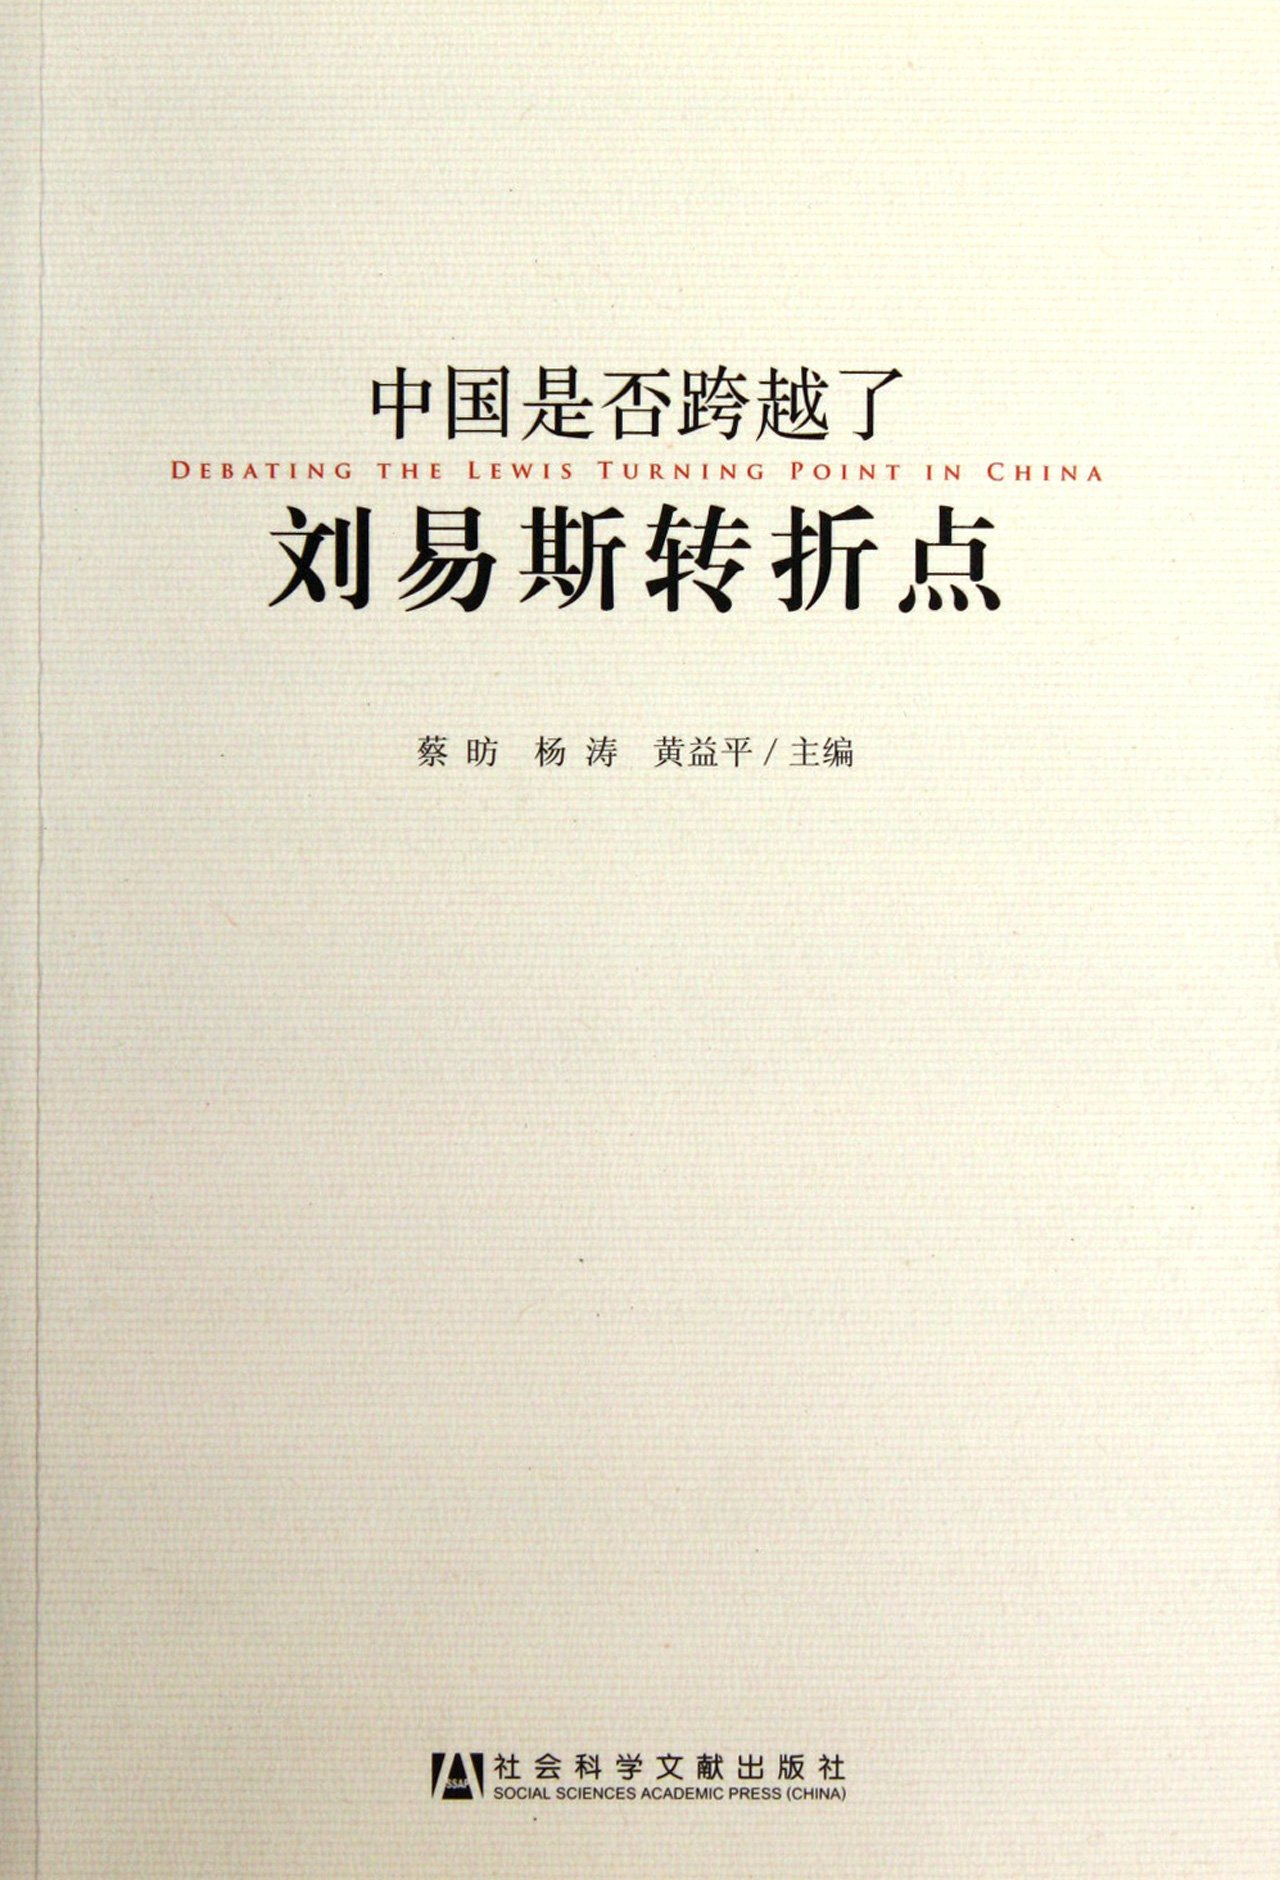 Has China Reached The Lewis Turning Point? (Chinese Edition) pdf epub